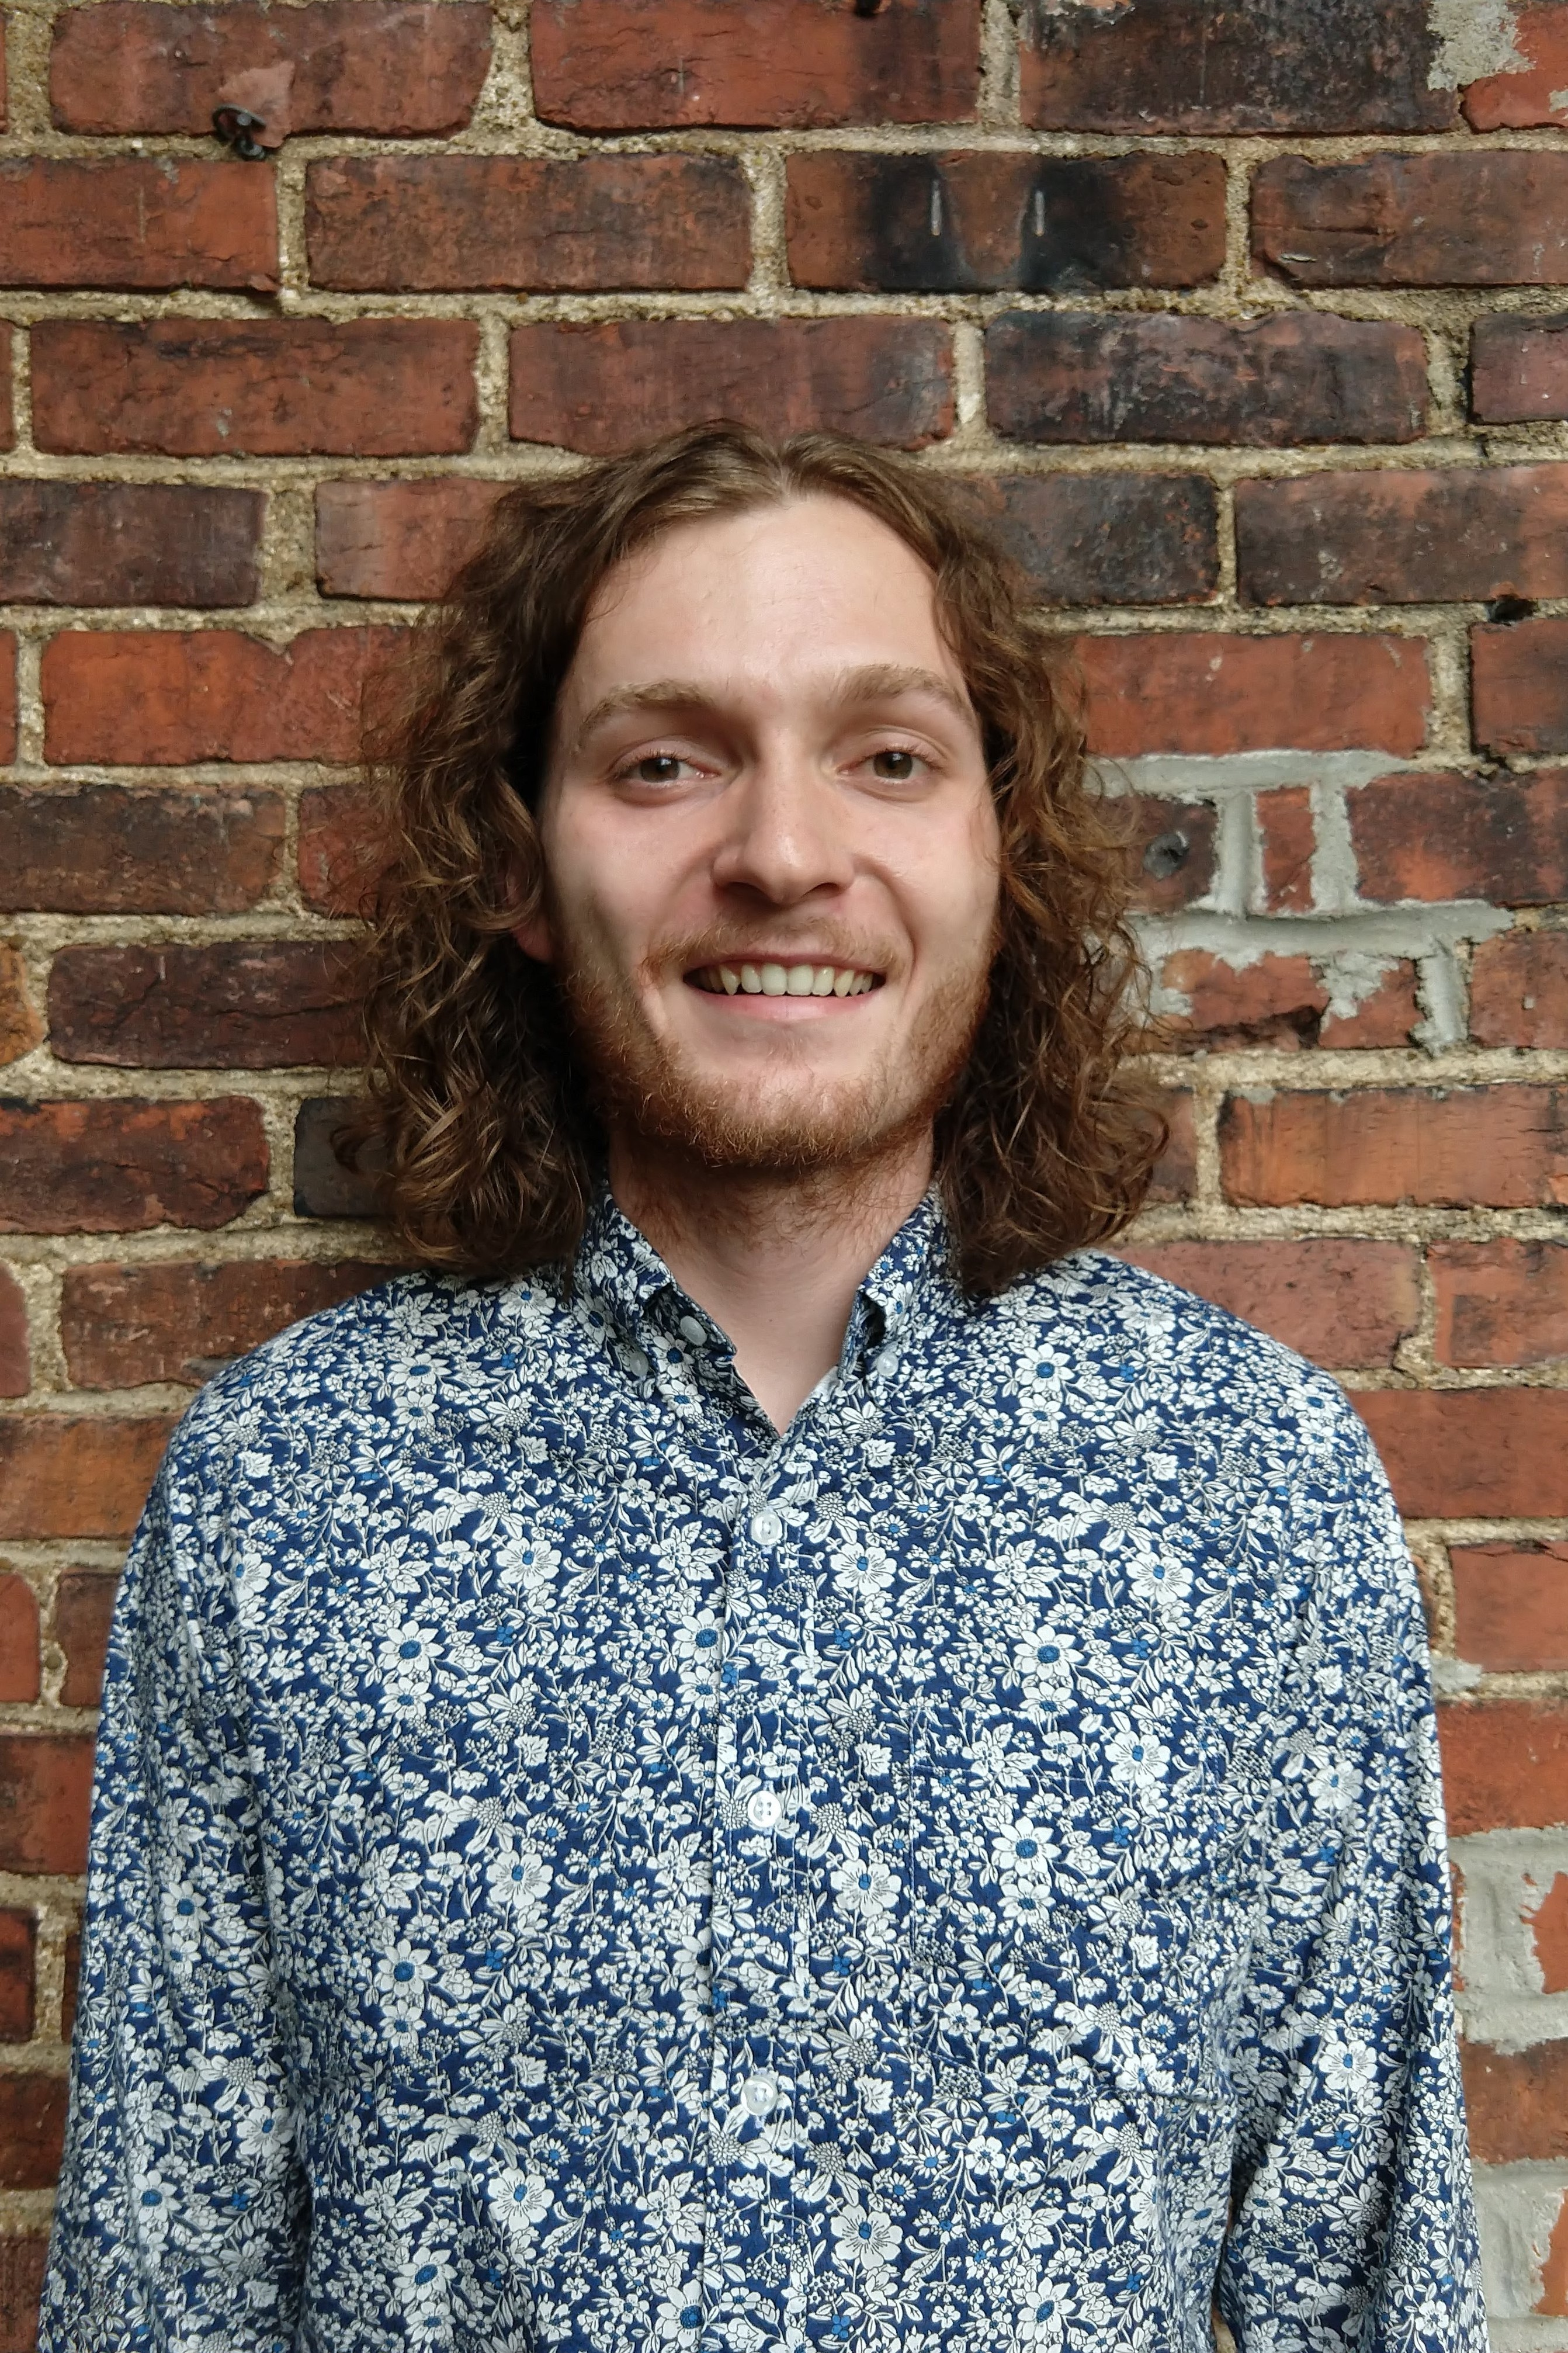 Mr. Joseph Matson joined the Caldwell Lab during the Summer of 2017 as a student in the Interdisciplinary Materials Science Program at Vanderbilt. He comes to us from Hendrix College, where he was a Physics Major.